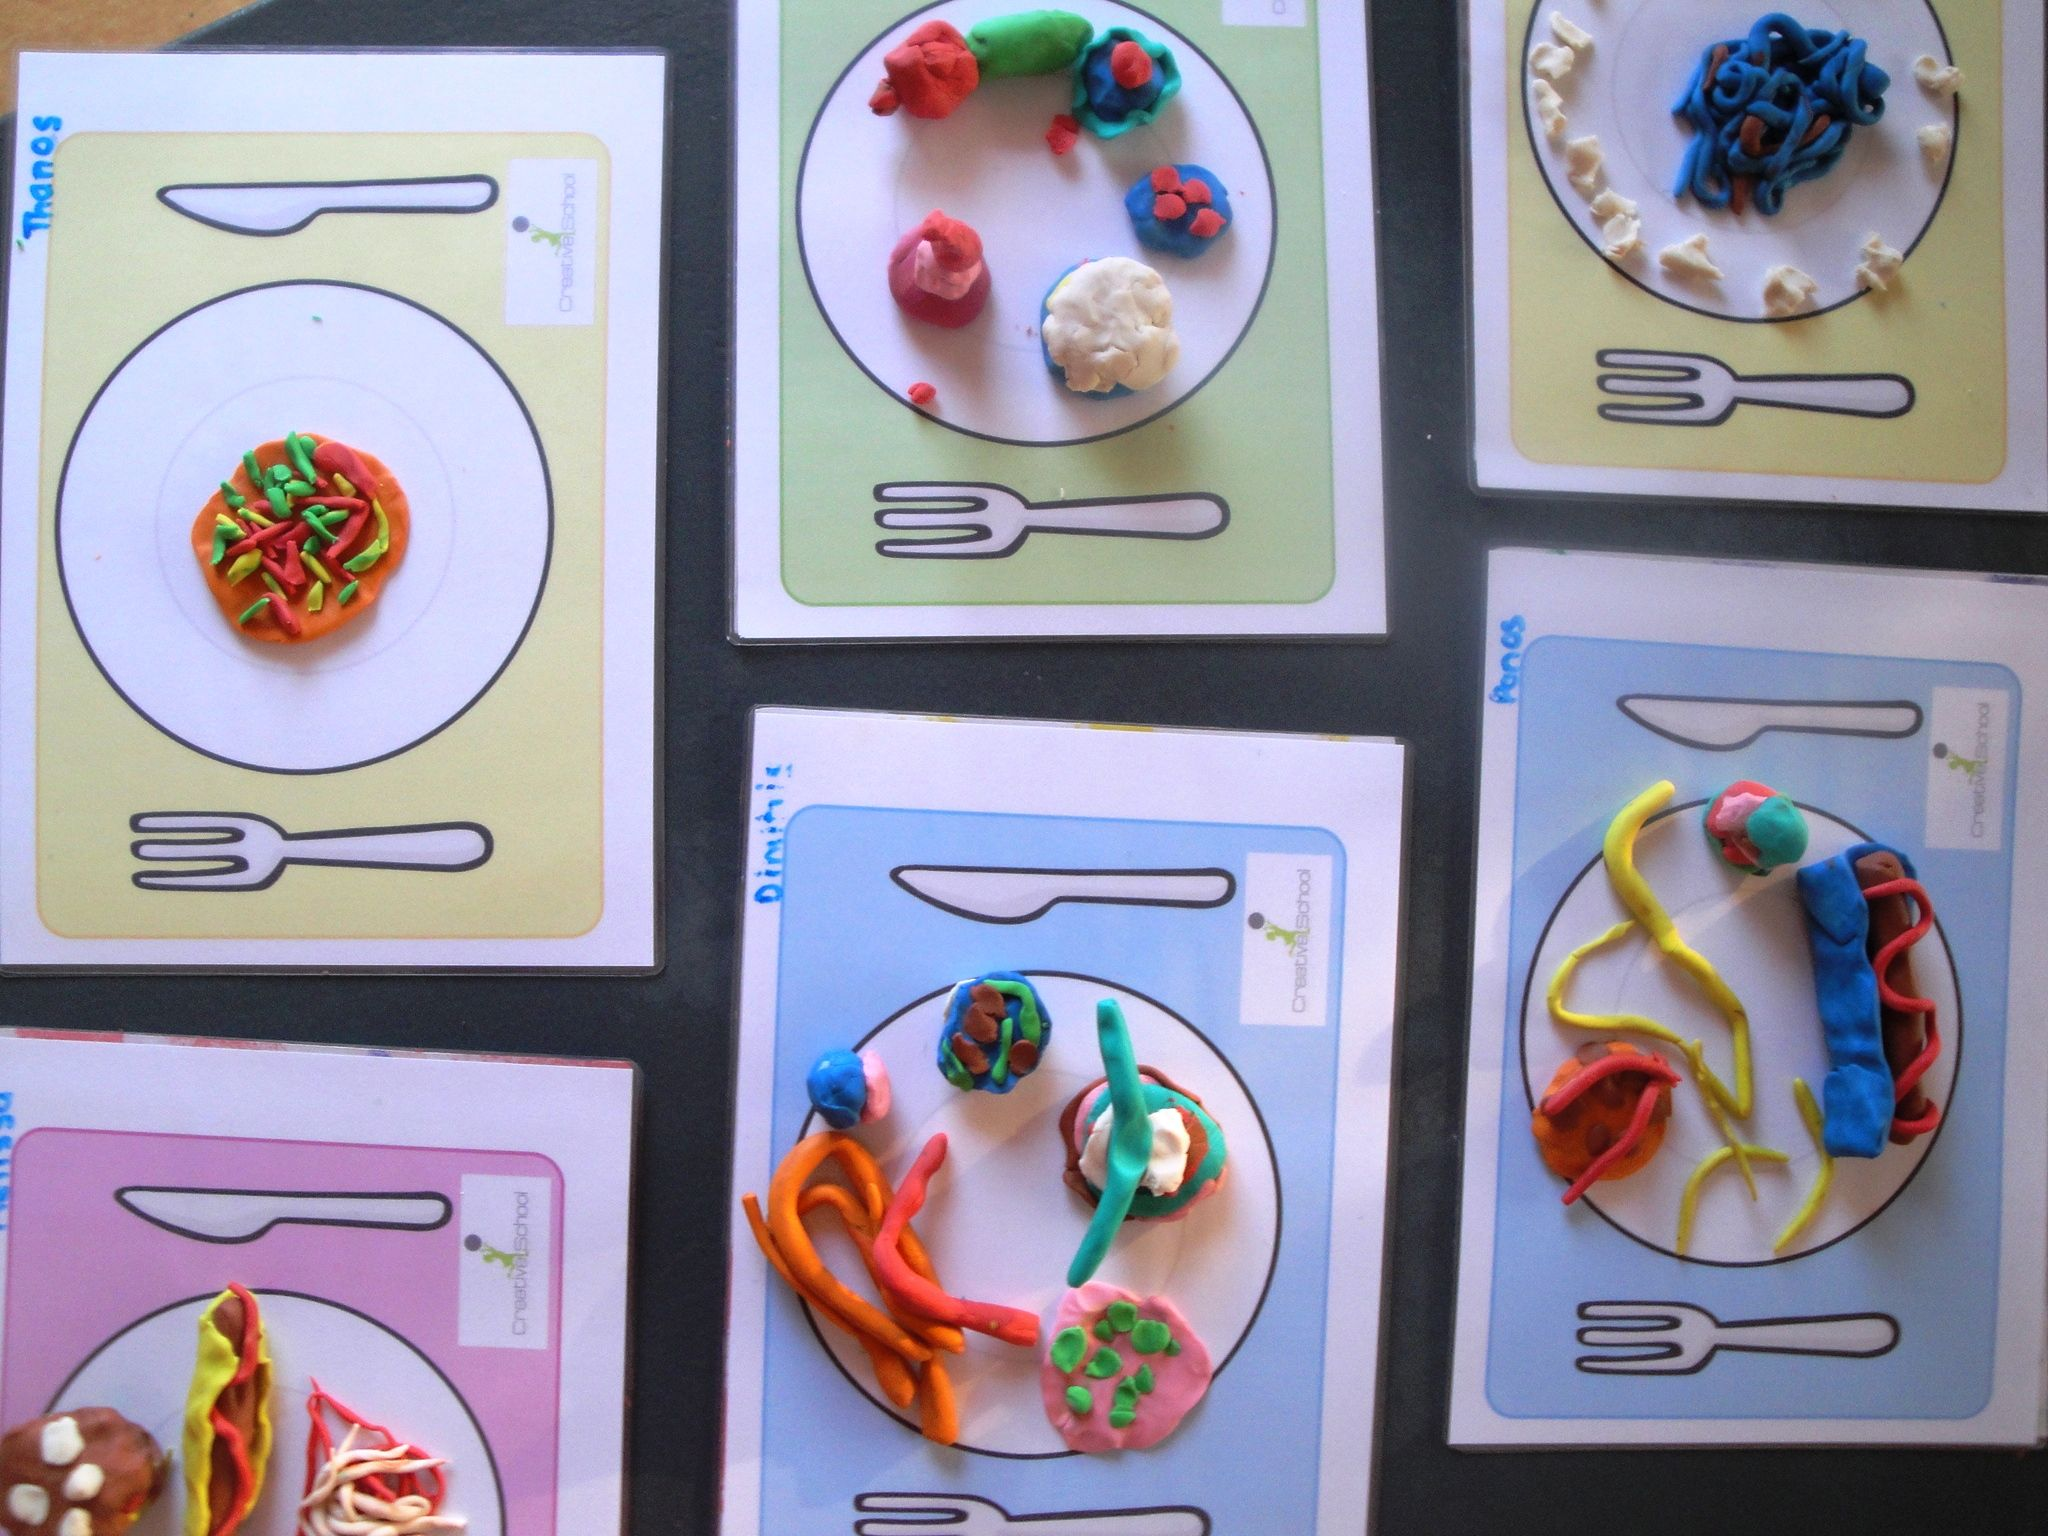 My Favourite Food Activity Kids Created Their Favourite Dishes With Playdough